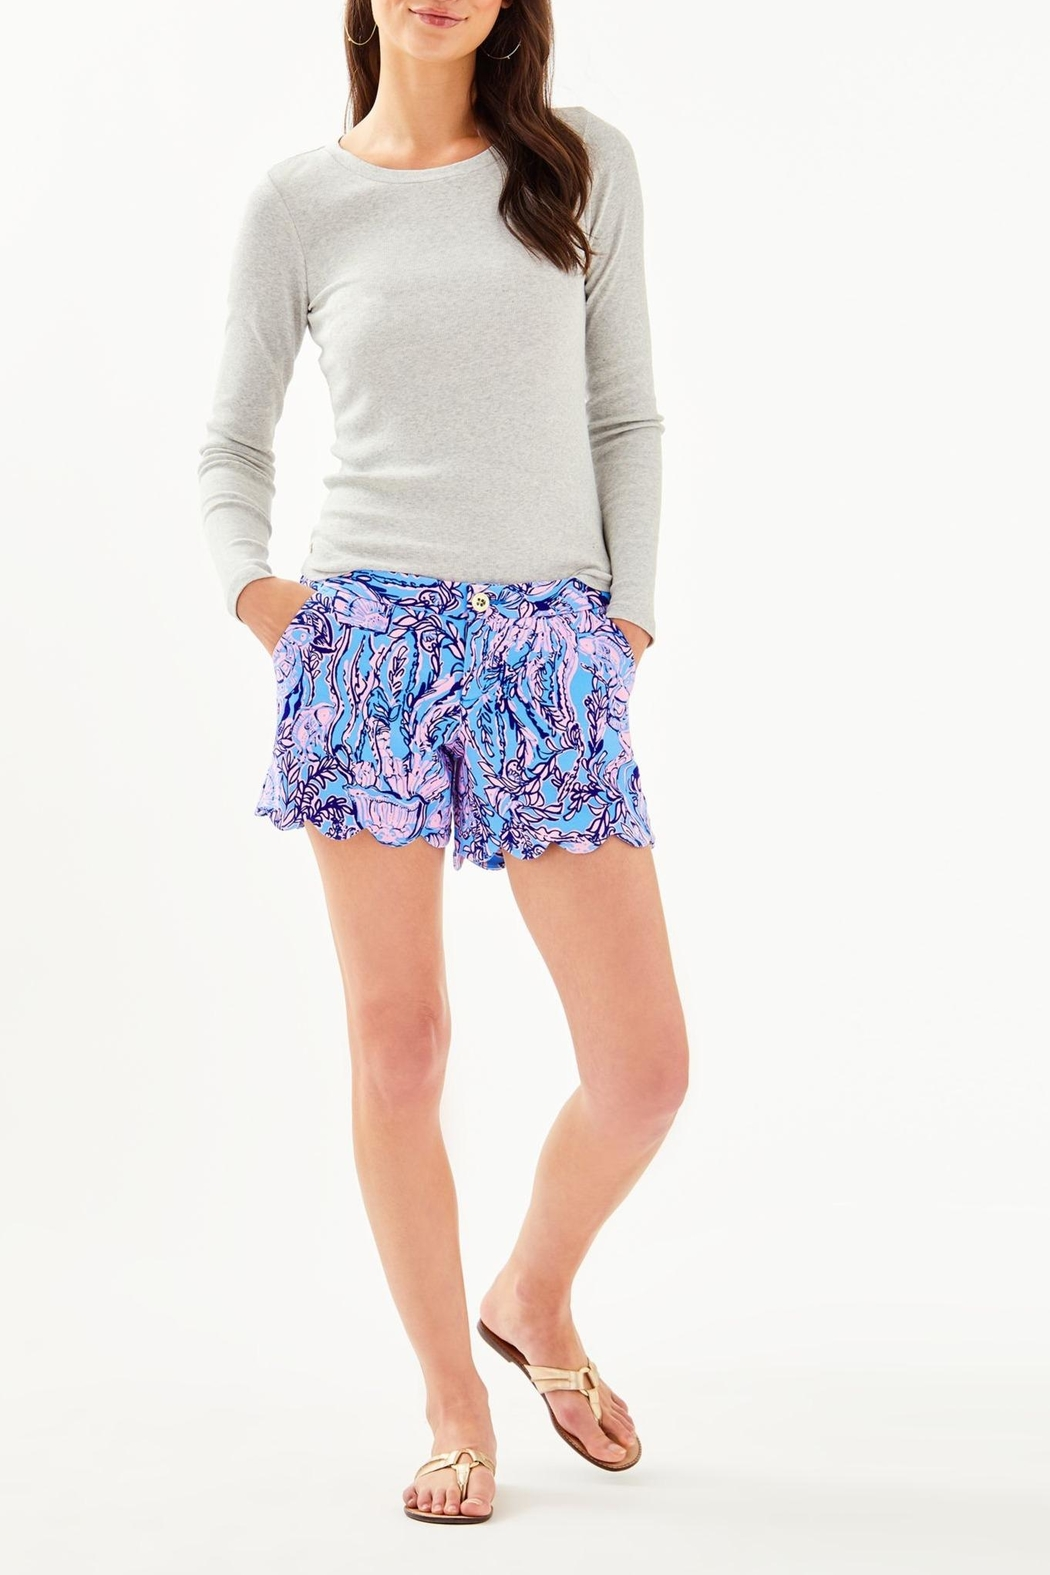 Lilly Pulitzer Buttercup Knit Short - Back Cropped Image